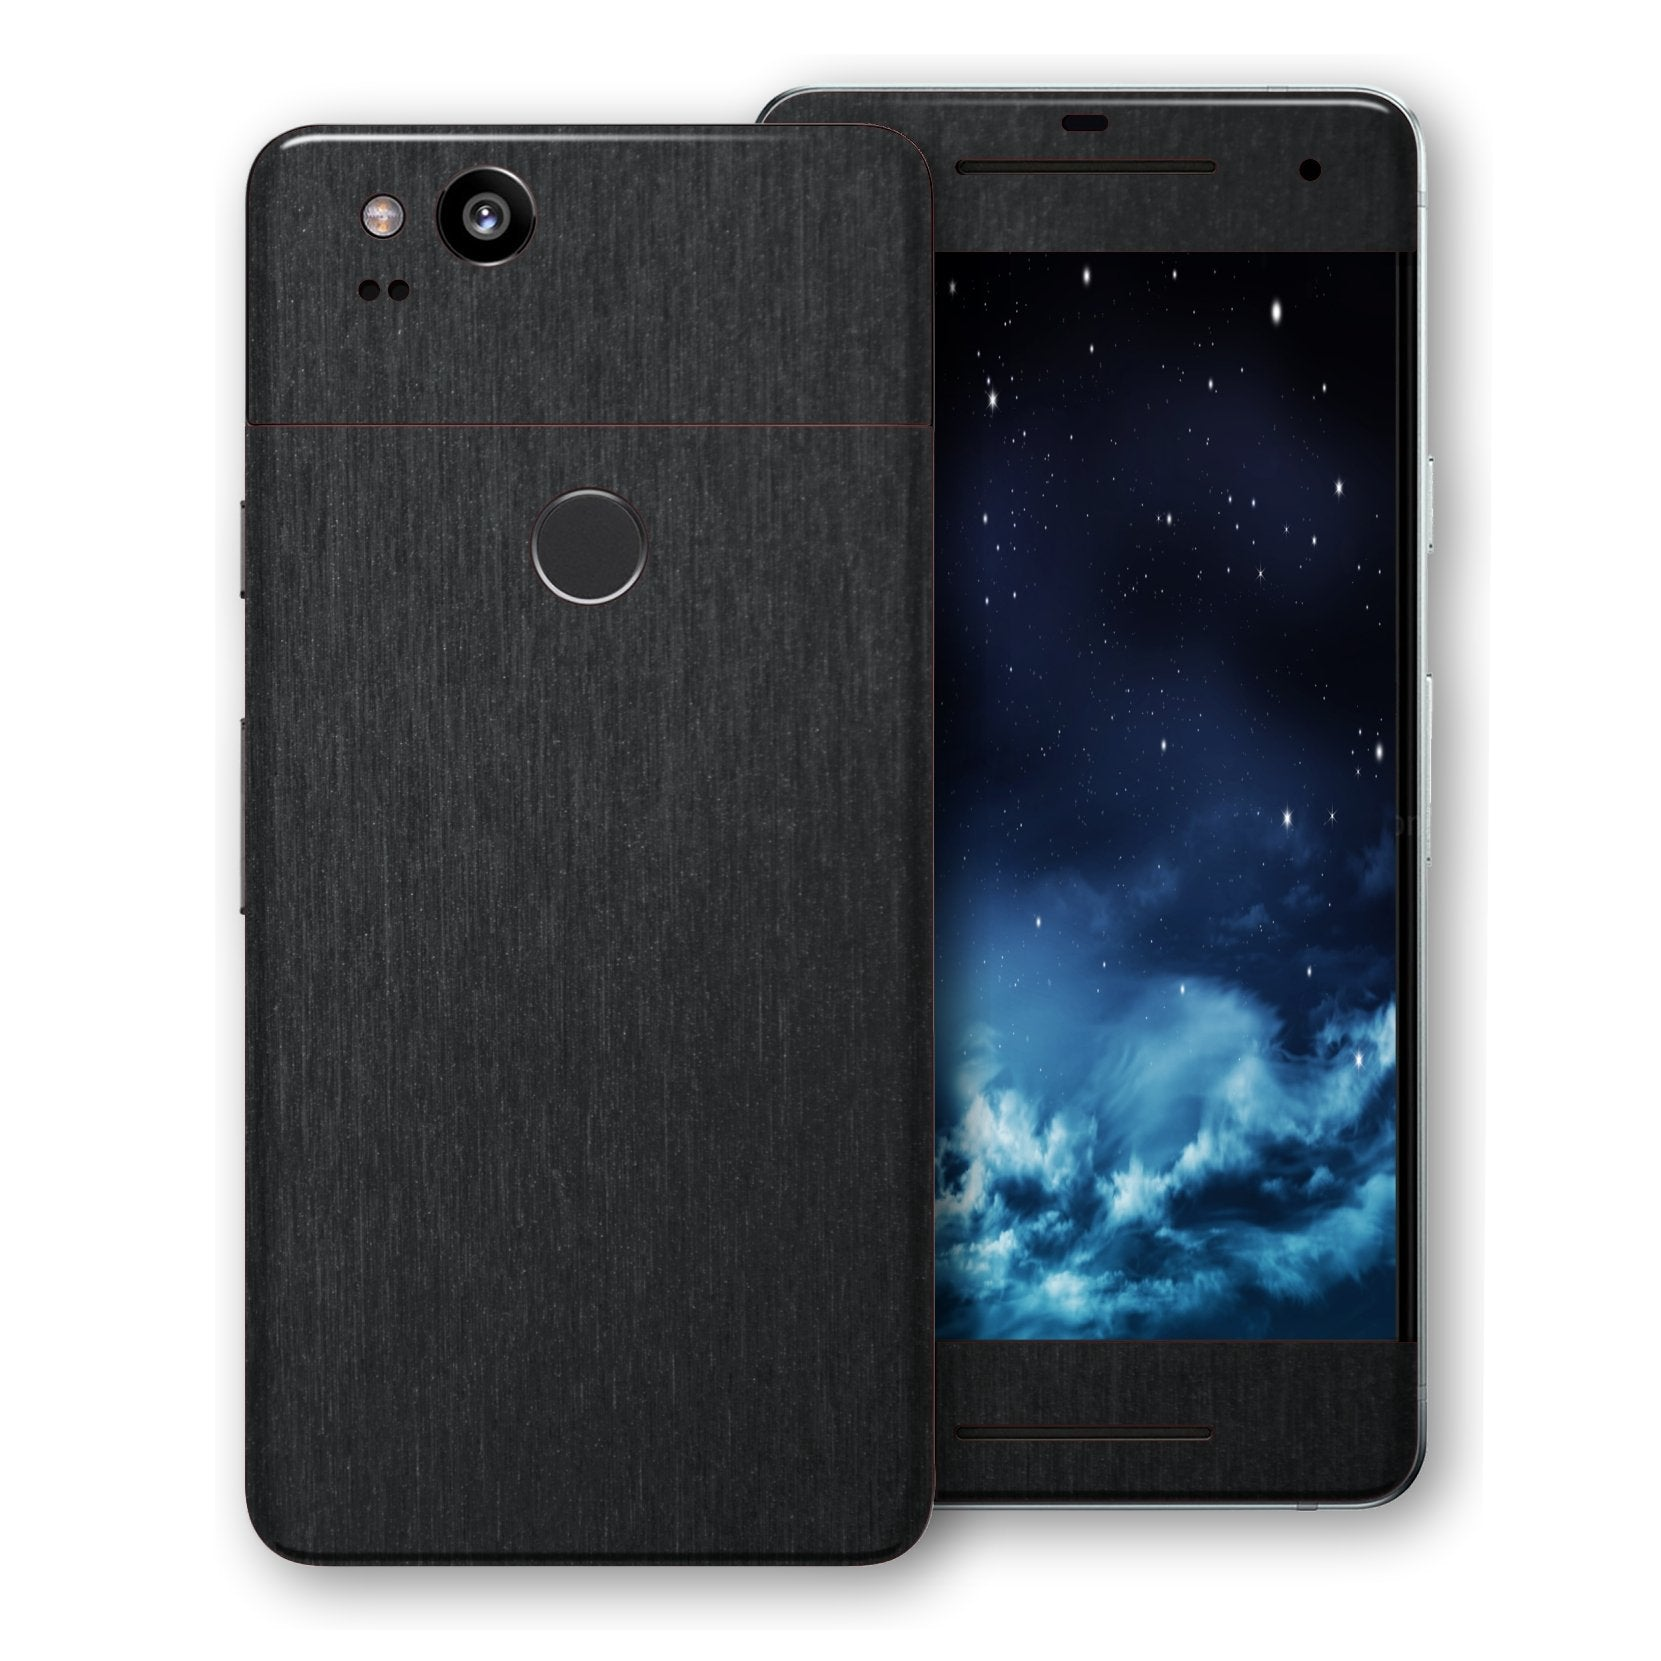 Google Pixel 2 Brushed Black Metallic Metal Skin, Decal, Wrap, Protector, Cover by EasySkinz | EasySkinz.com